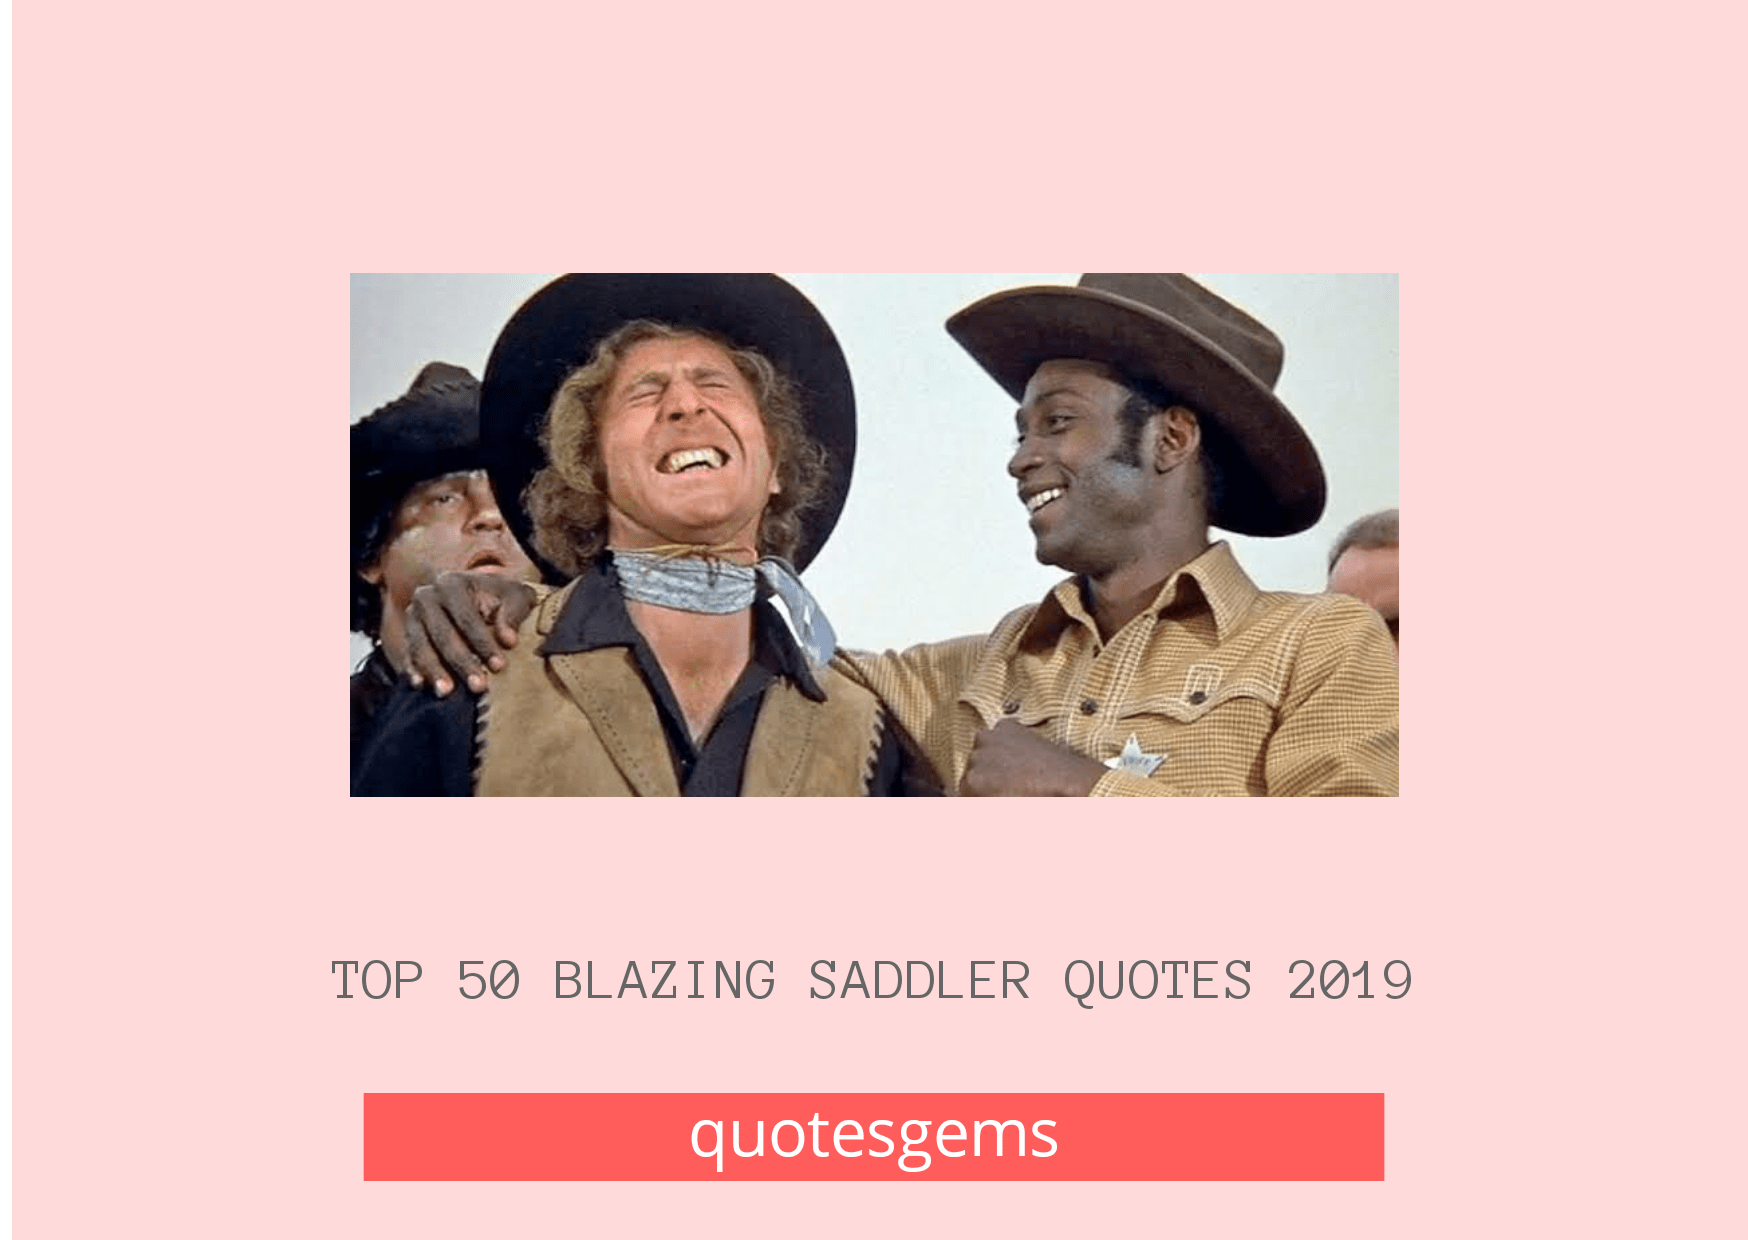 Best Blazing Saddles Quotes 2019